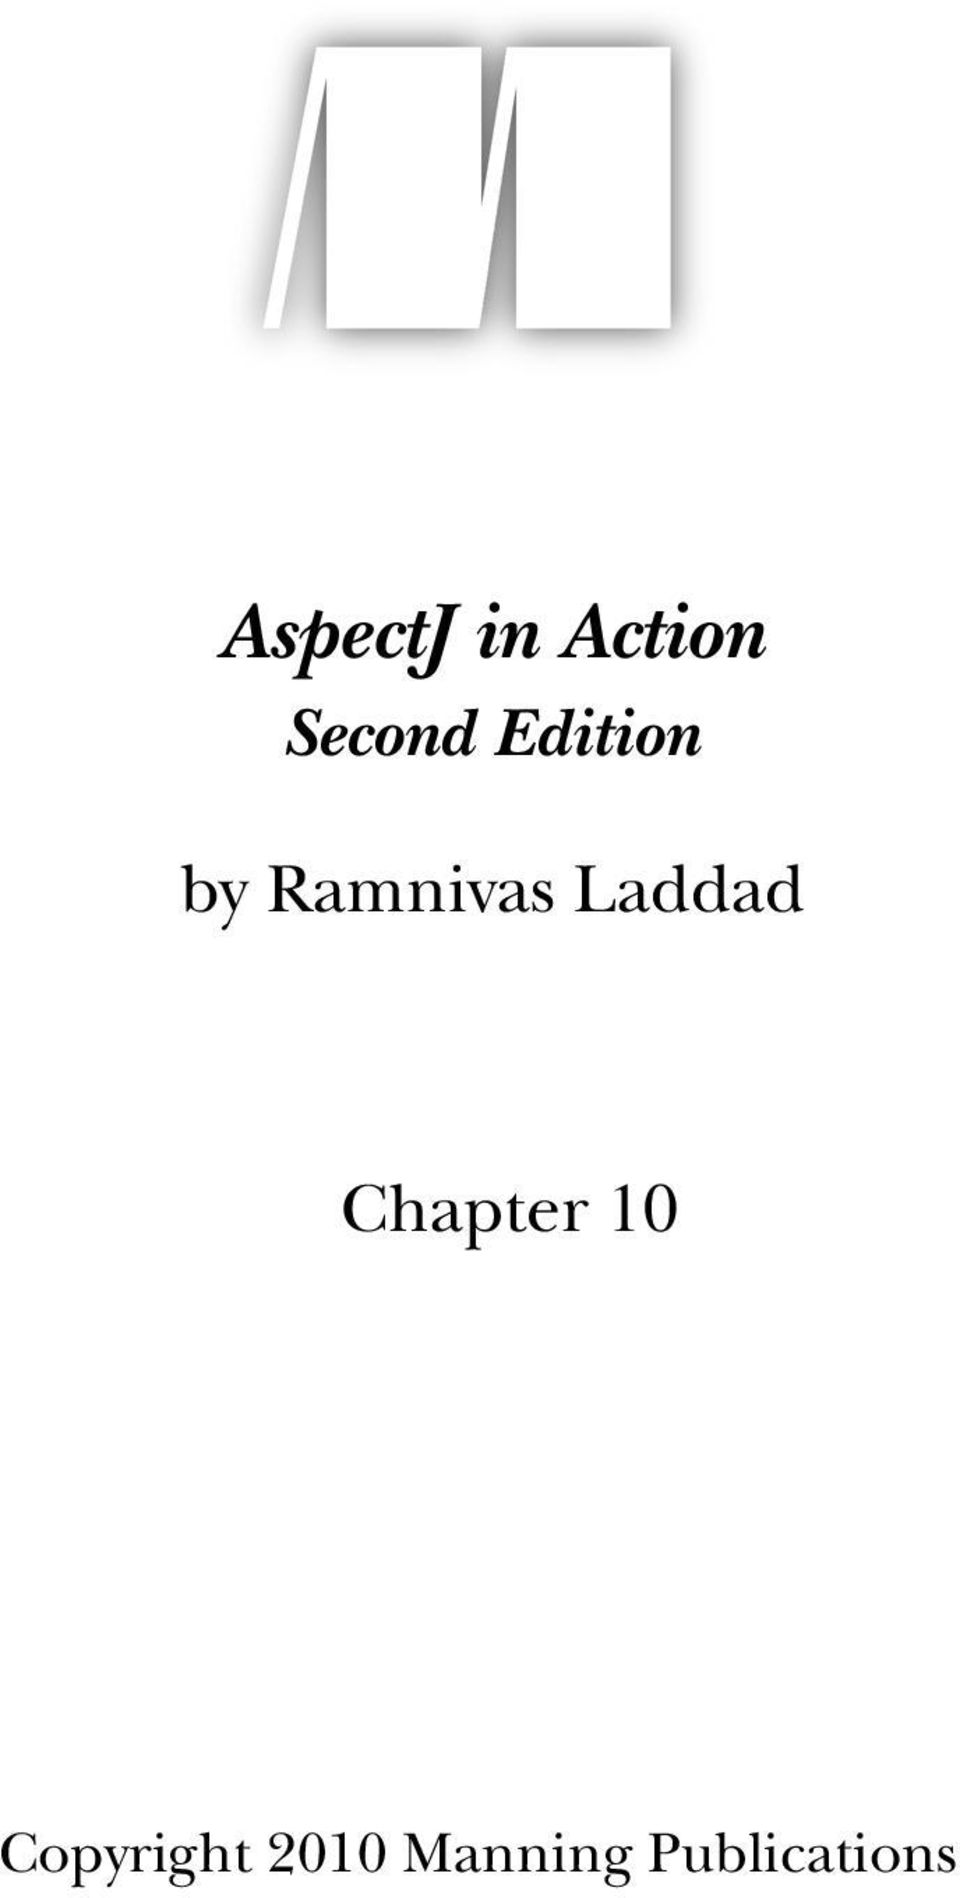 Laddad Chapter 10